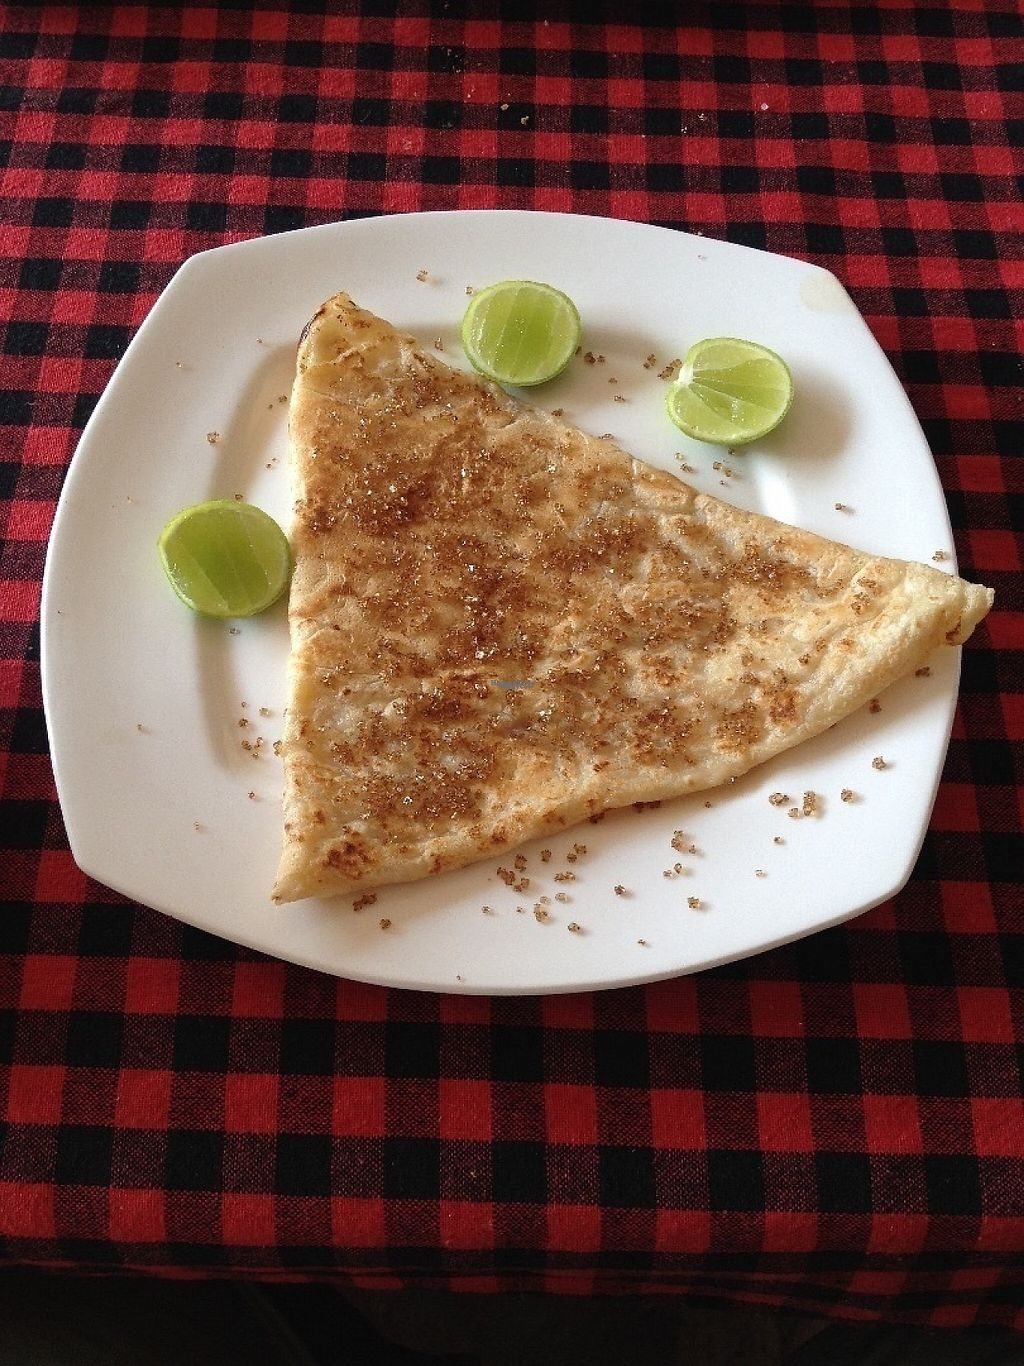 """Photo of Maria Guesthouse Restaurant  by <a href=""""/members/profile/Hellavegan"""">Hellavegan</a> <br/>Vegan Pancake <br/> January 25, 2017  - <a href='/contact/abuse/image/85612/216682'>Report</a>"""